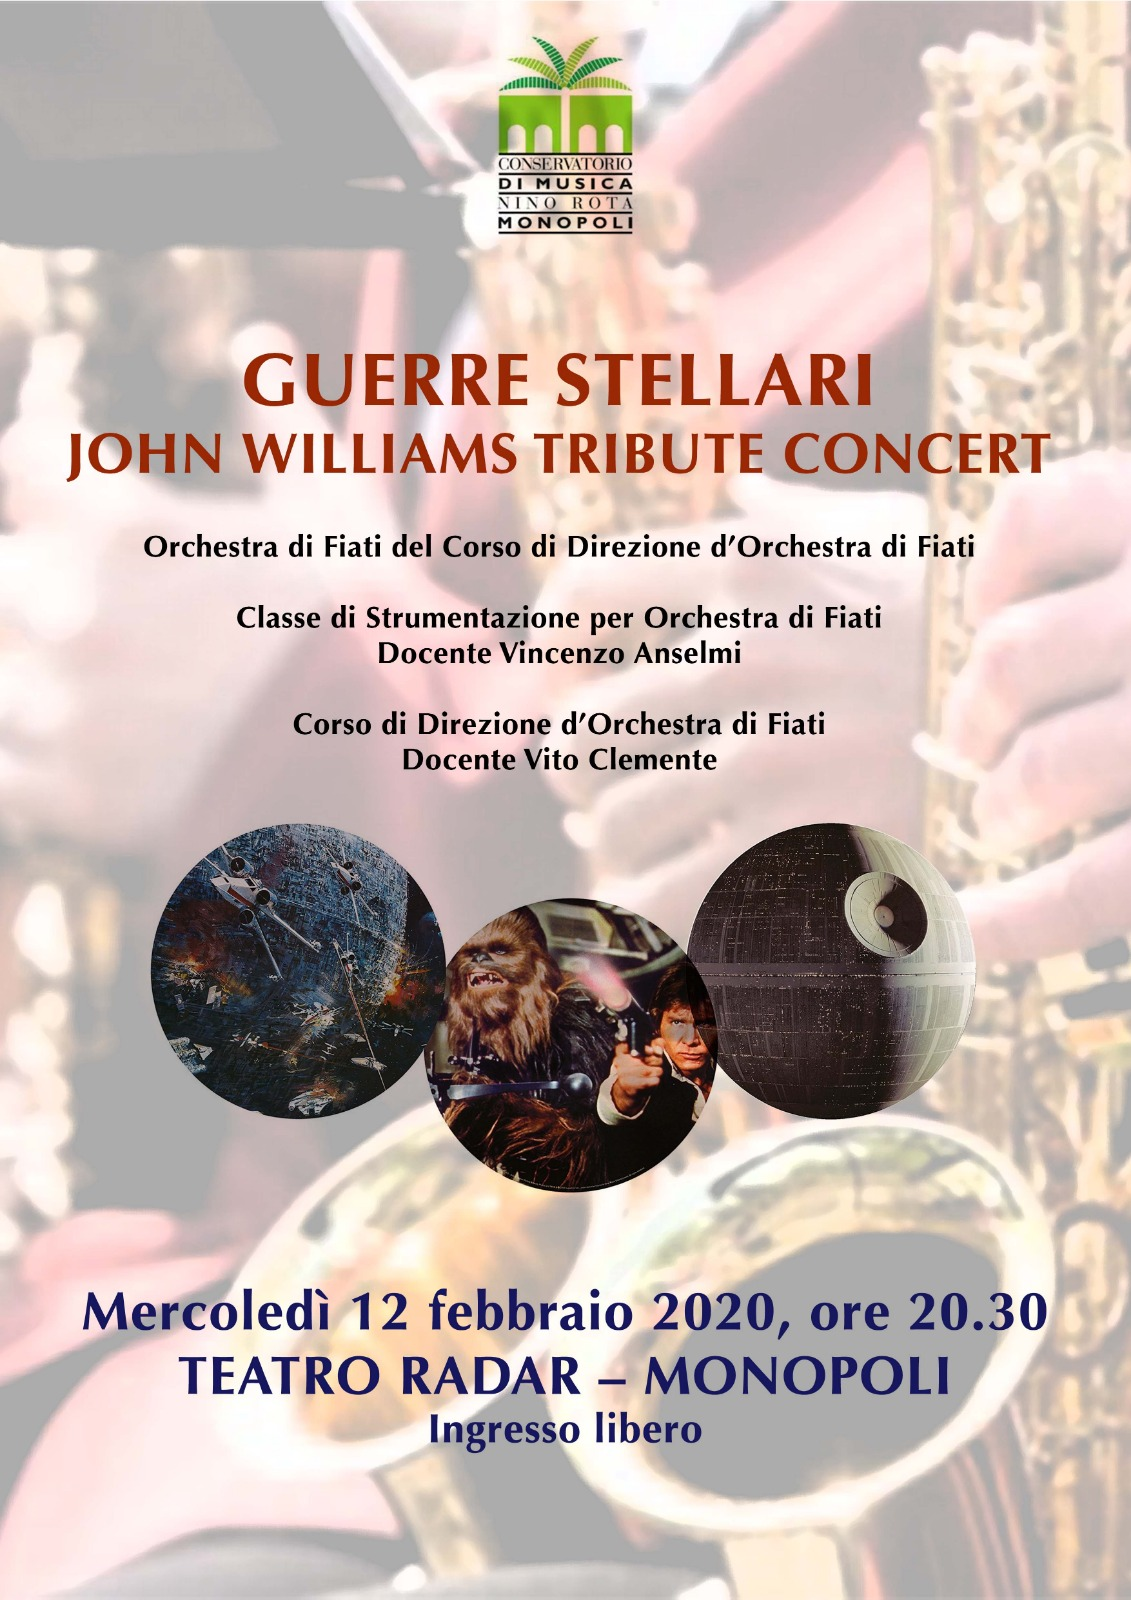 GUERRE STELLARI - JOHN WILLIAMS TRIBUTE CONCERT